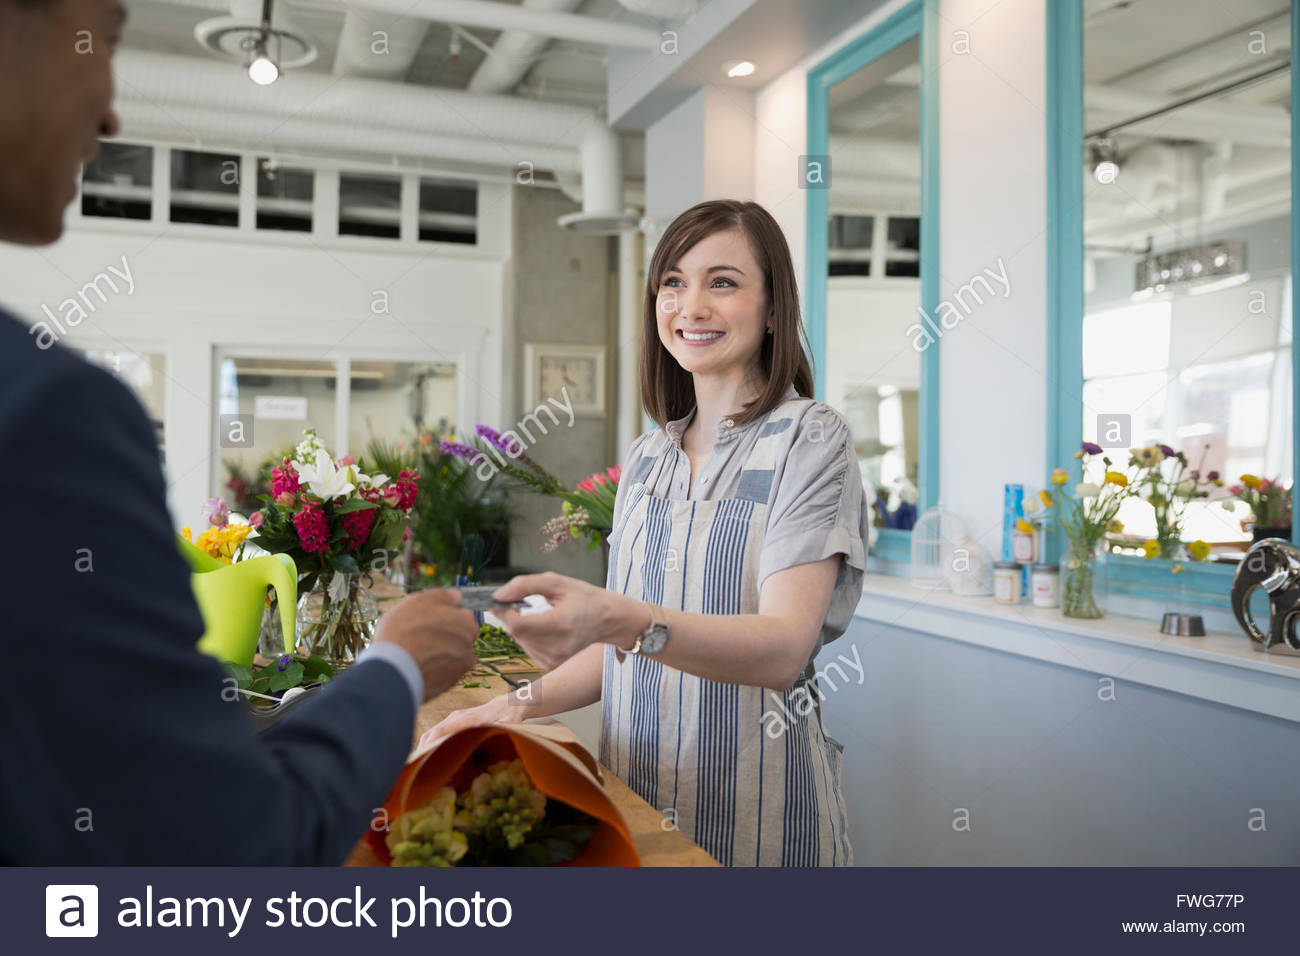 Man paying florist with credit card flower shop - Stock Image